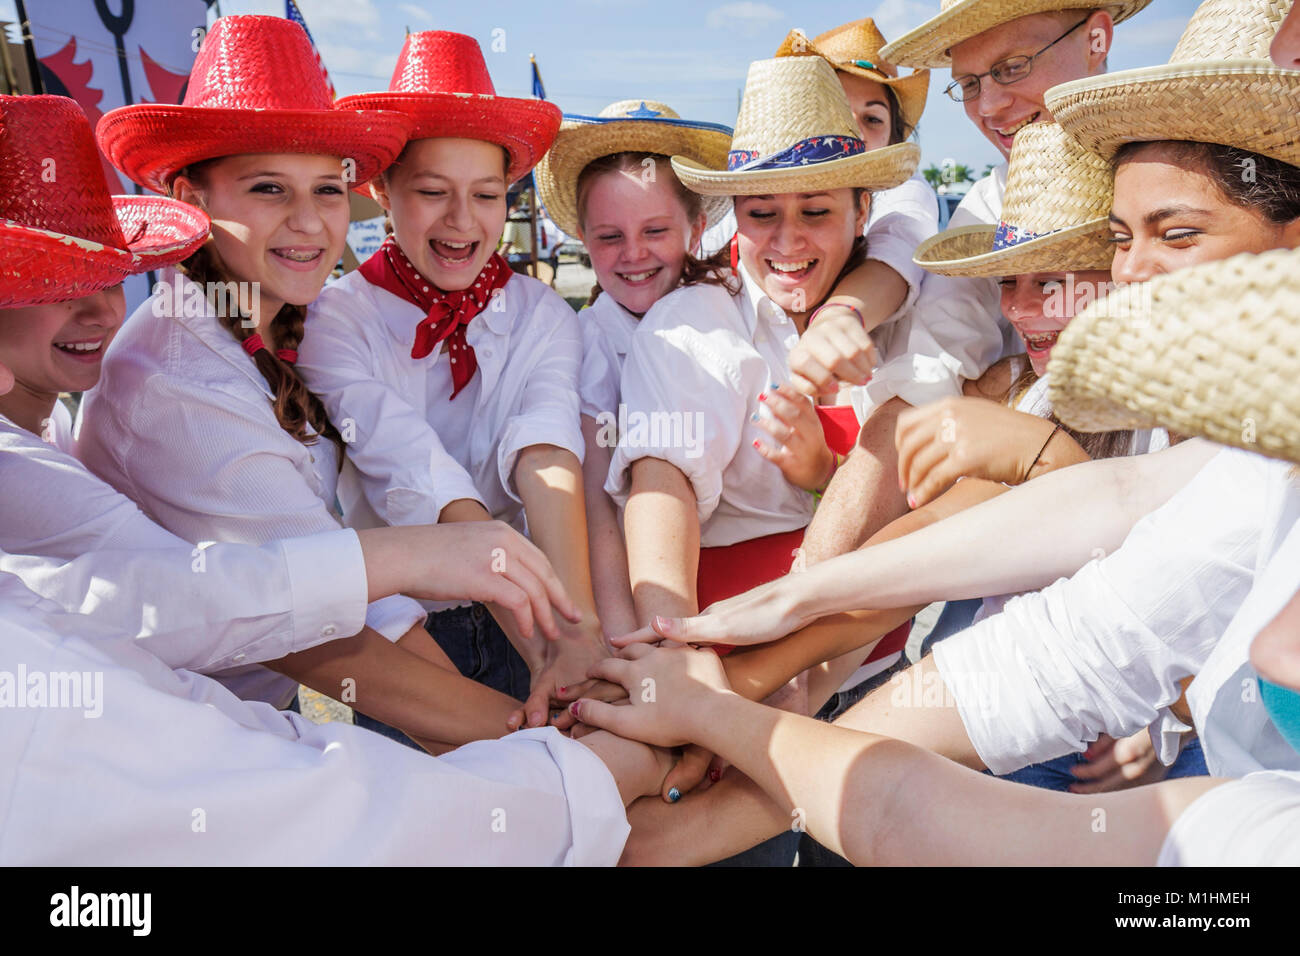 tradition girl teen camaraderie teamwork Western attire outfit - Stock Image